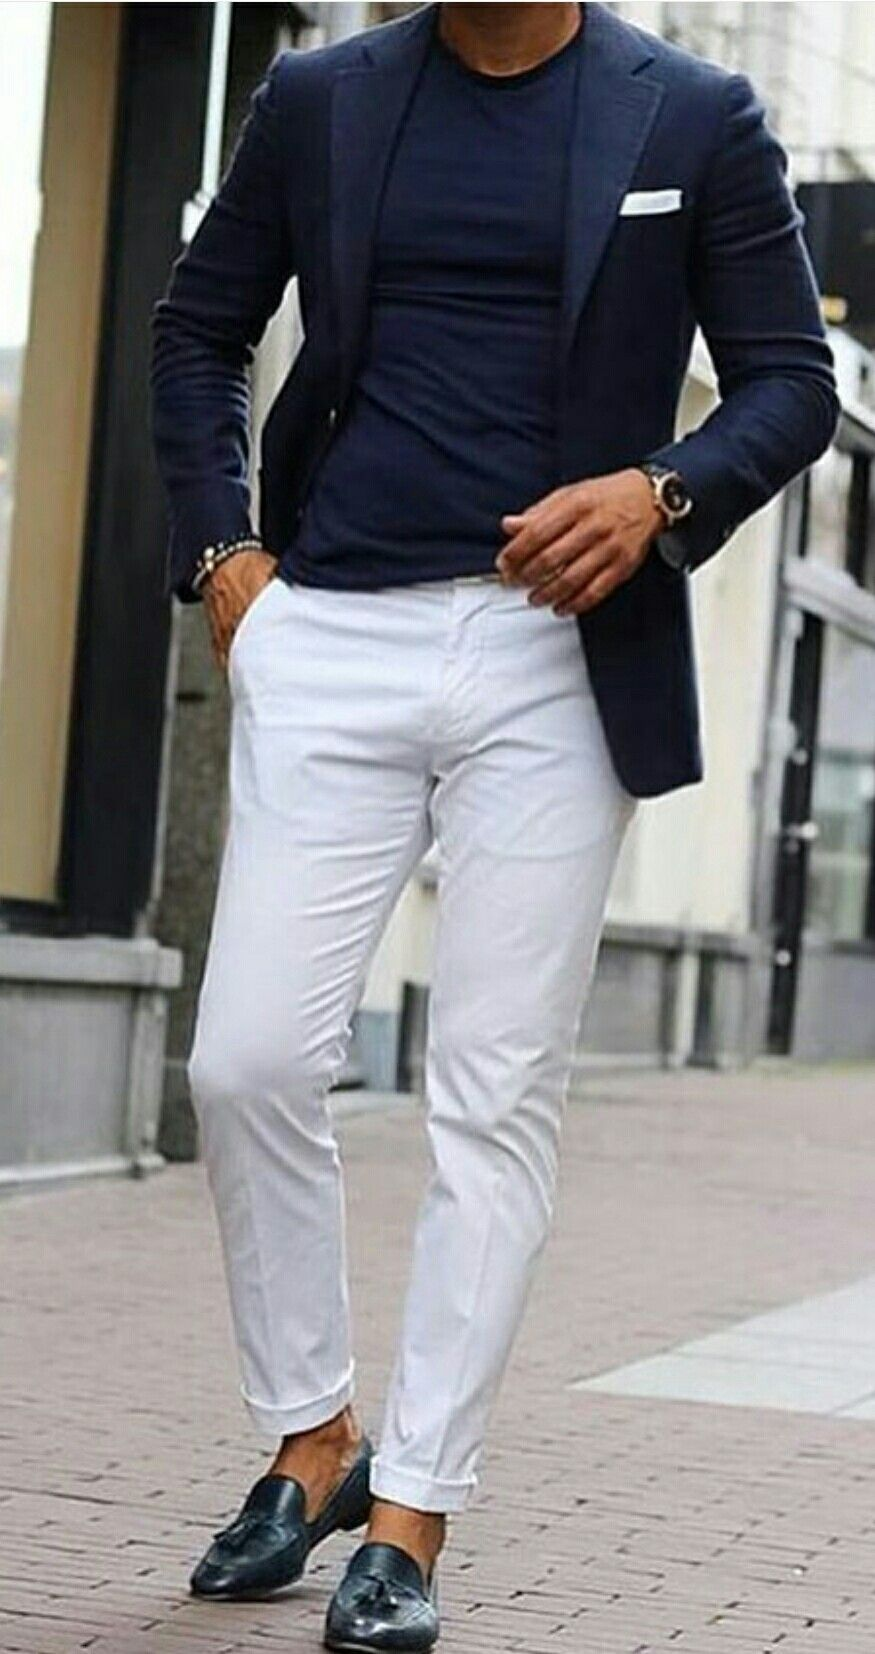 2743ce884688 mens fashion style - dark blue blazer and white chino summer style ...